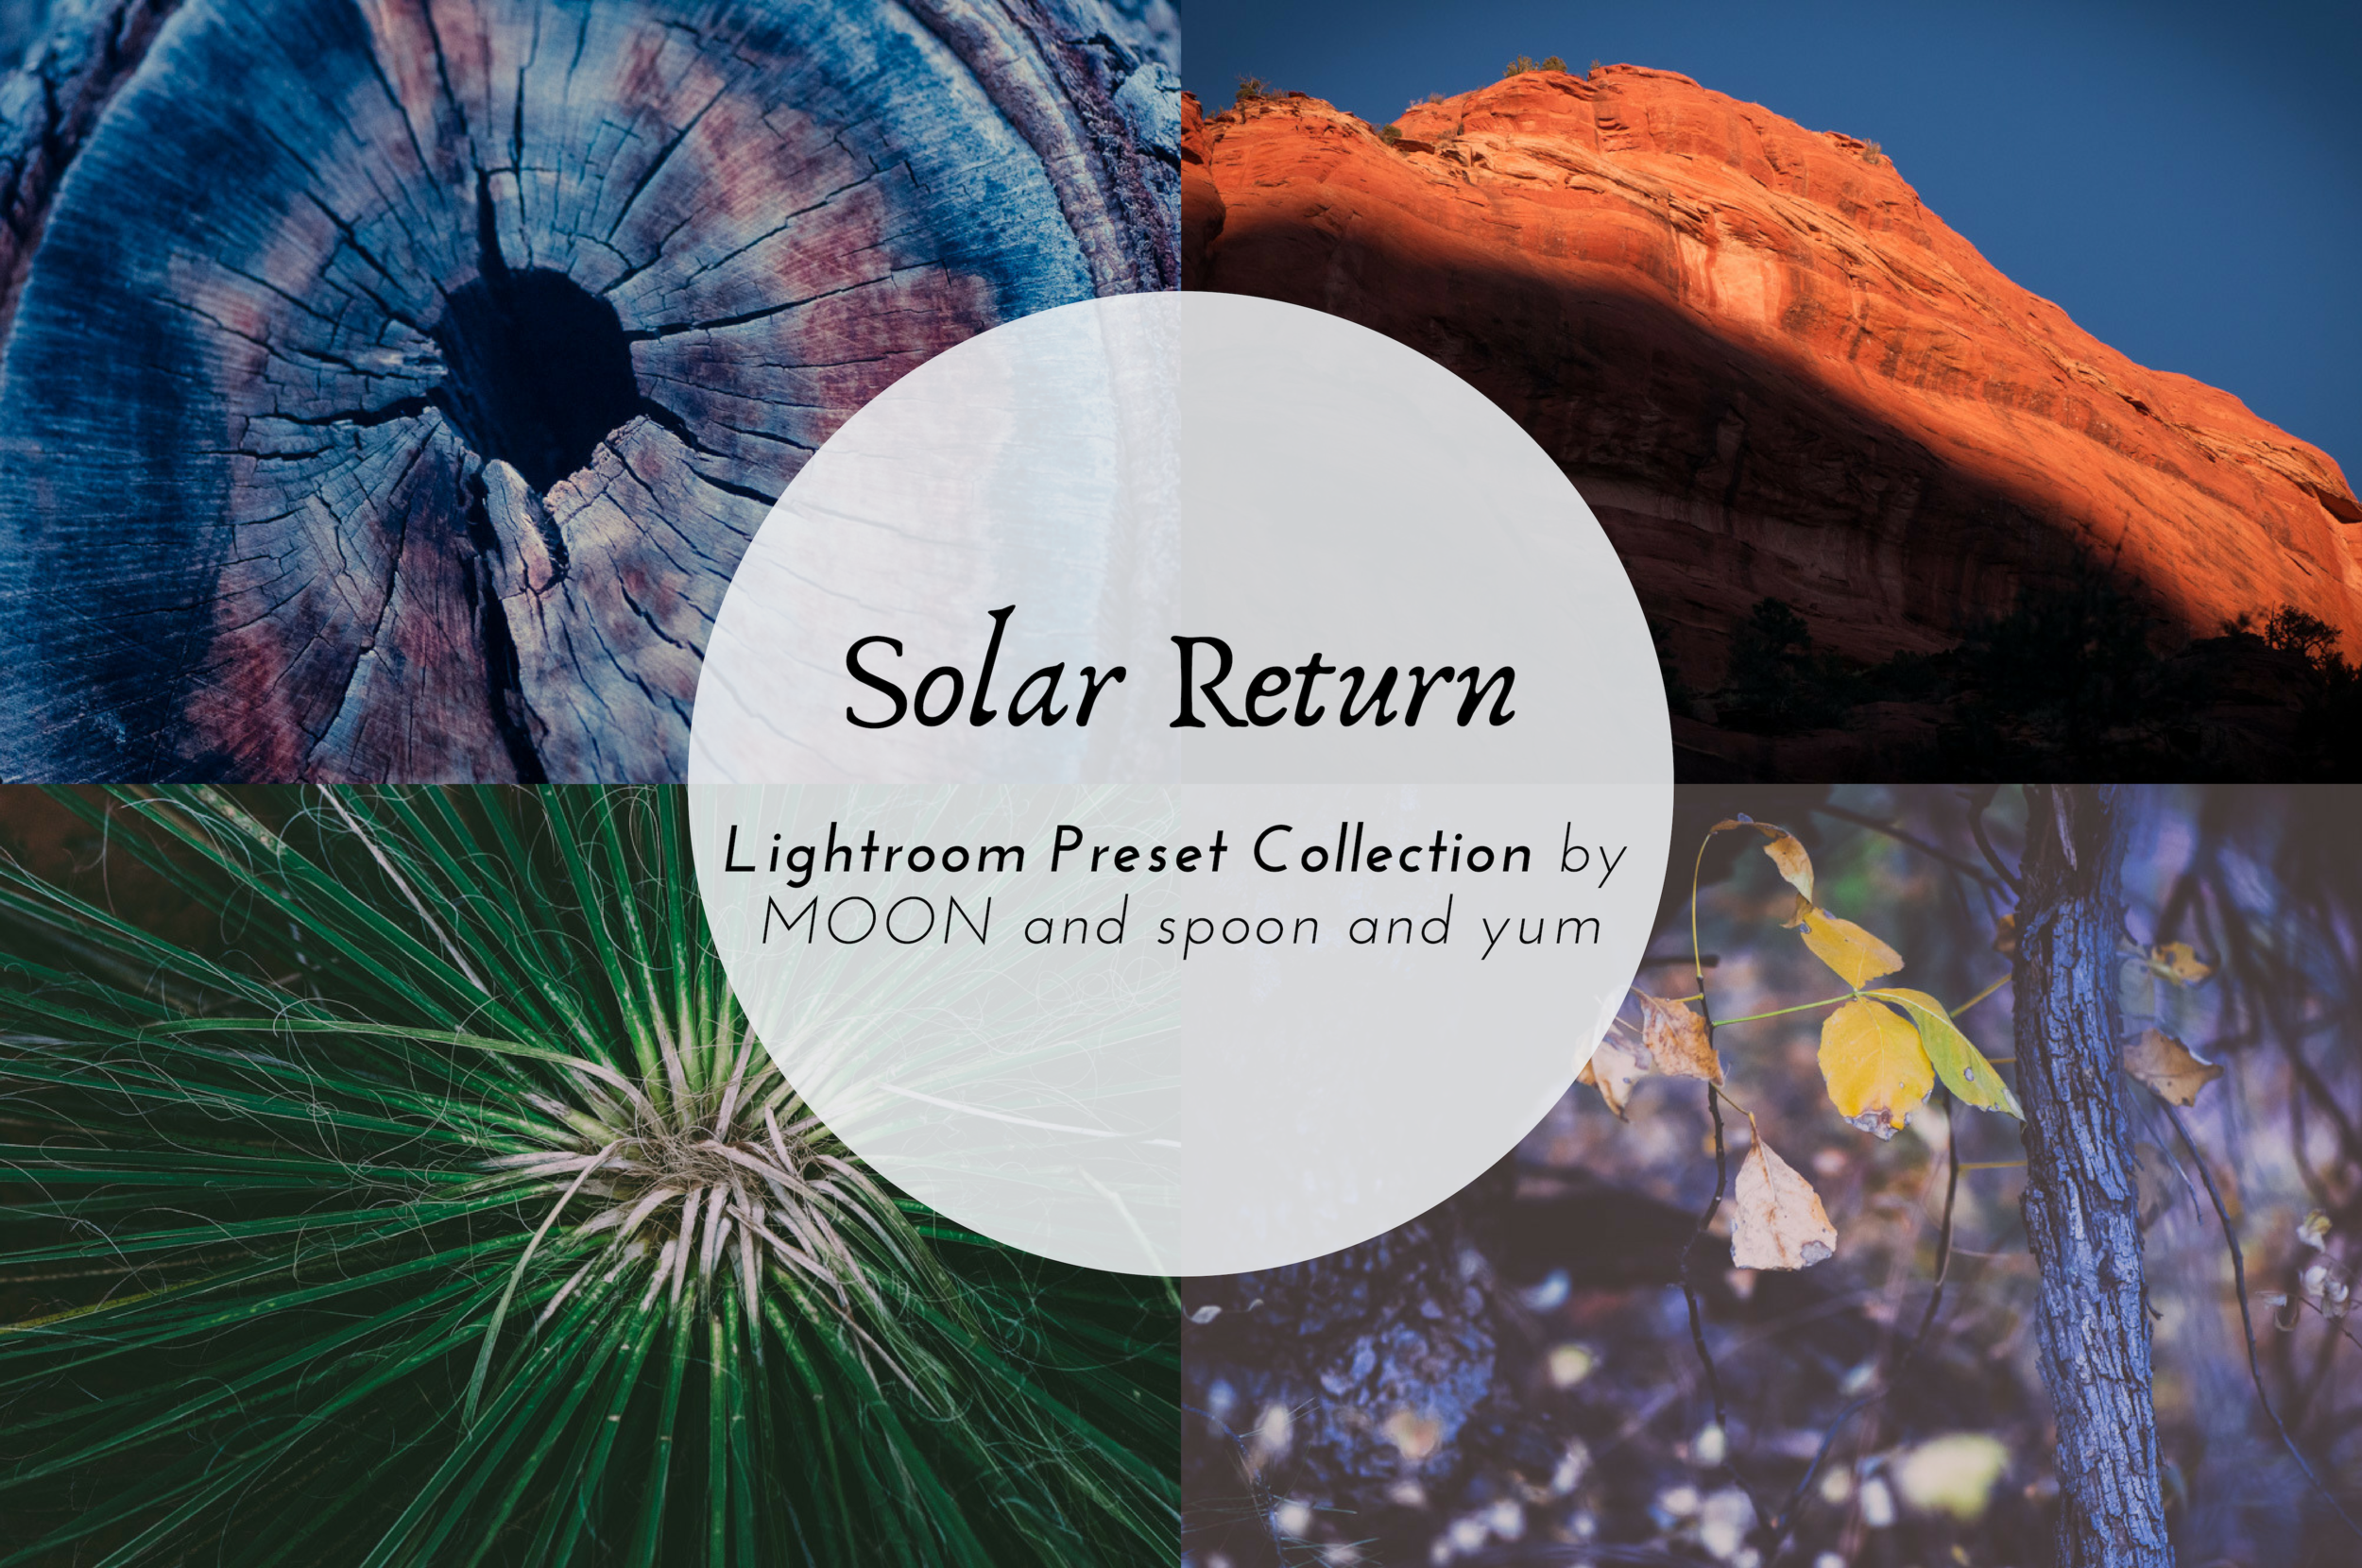 This Solar Return Lightroom Presets Collection is inspired by my favorite 35 mm films and digital VSCO film filters. They work beautifully for nature, landscape, travel, portrait, and food photos alike. Matte, moody, faded, vintage, rich, dark, colorful are some of the words I would use to describe this versatile presets collection inspired by film. Enjoy! #lightroompresets #filmpresets #vscopresets #mattepresets #moodypresets #vscofilmfilters